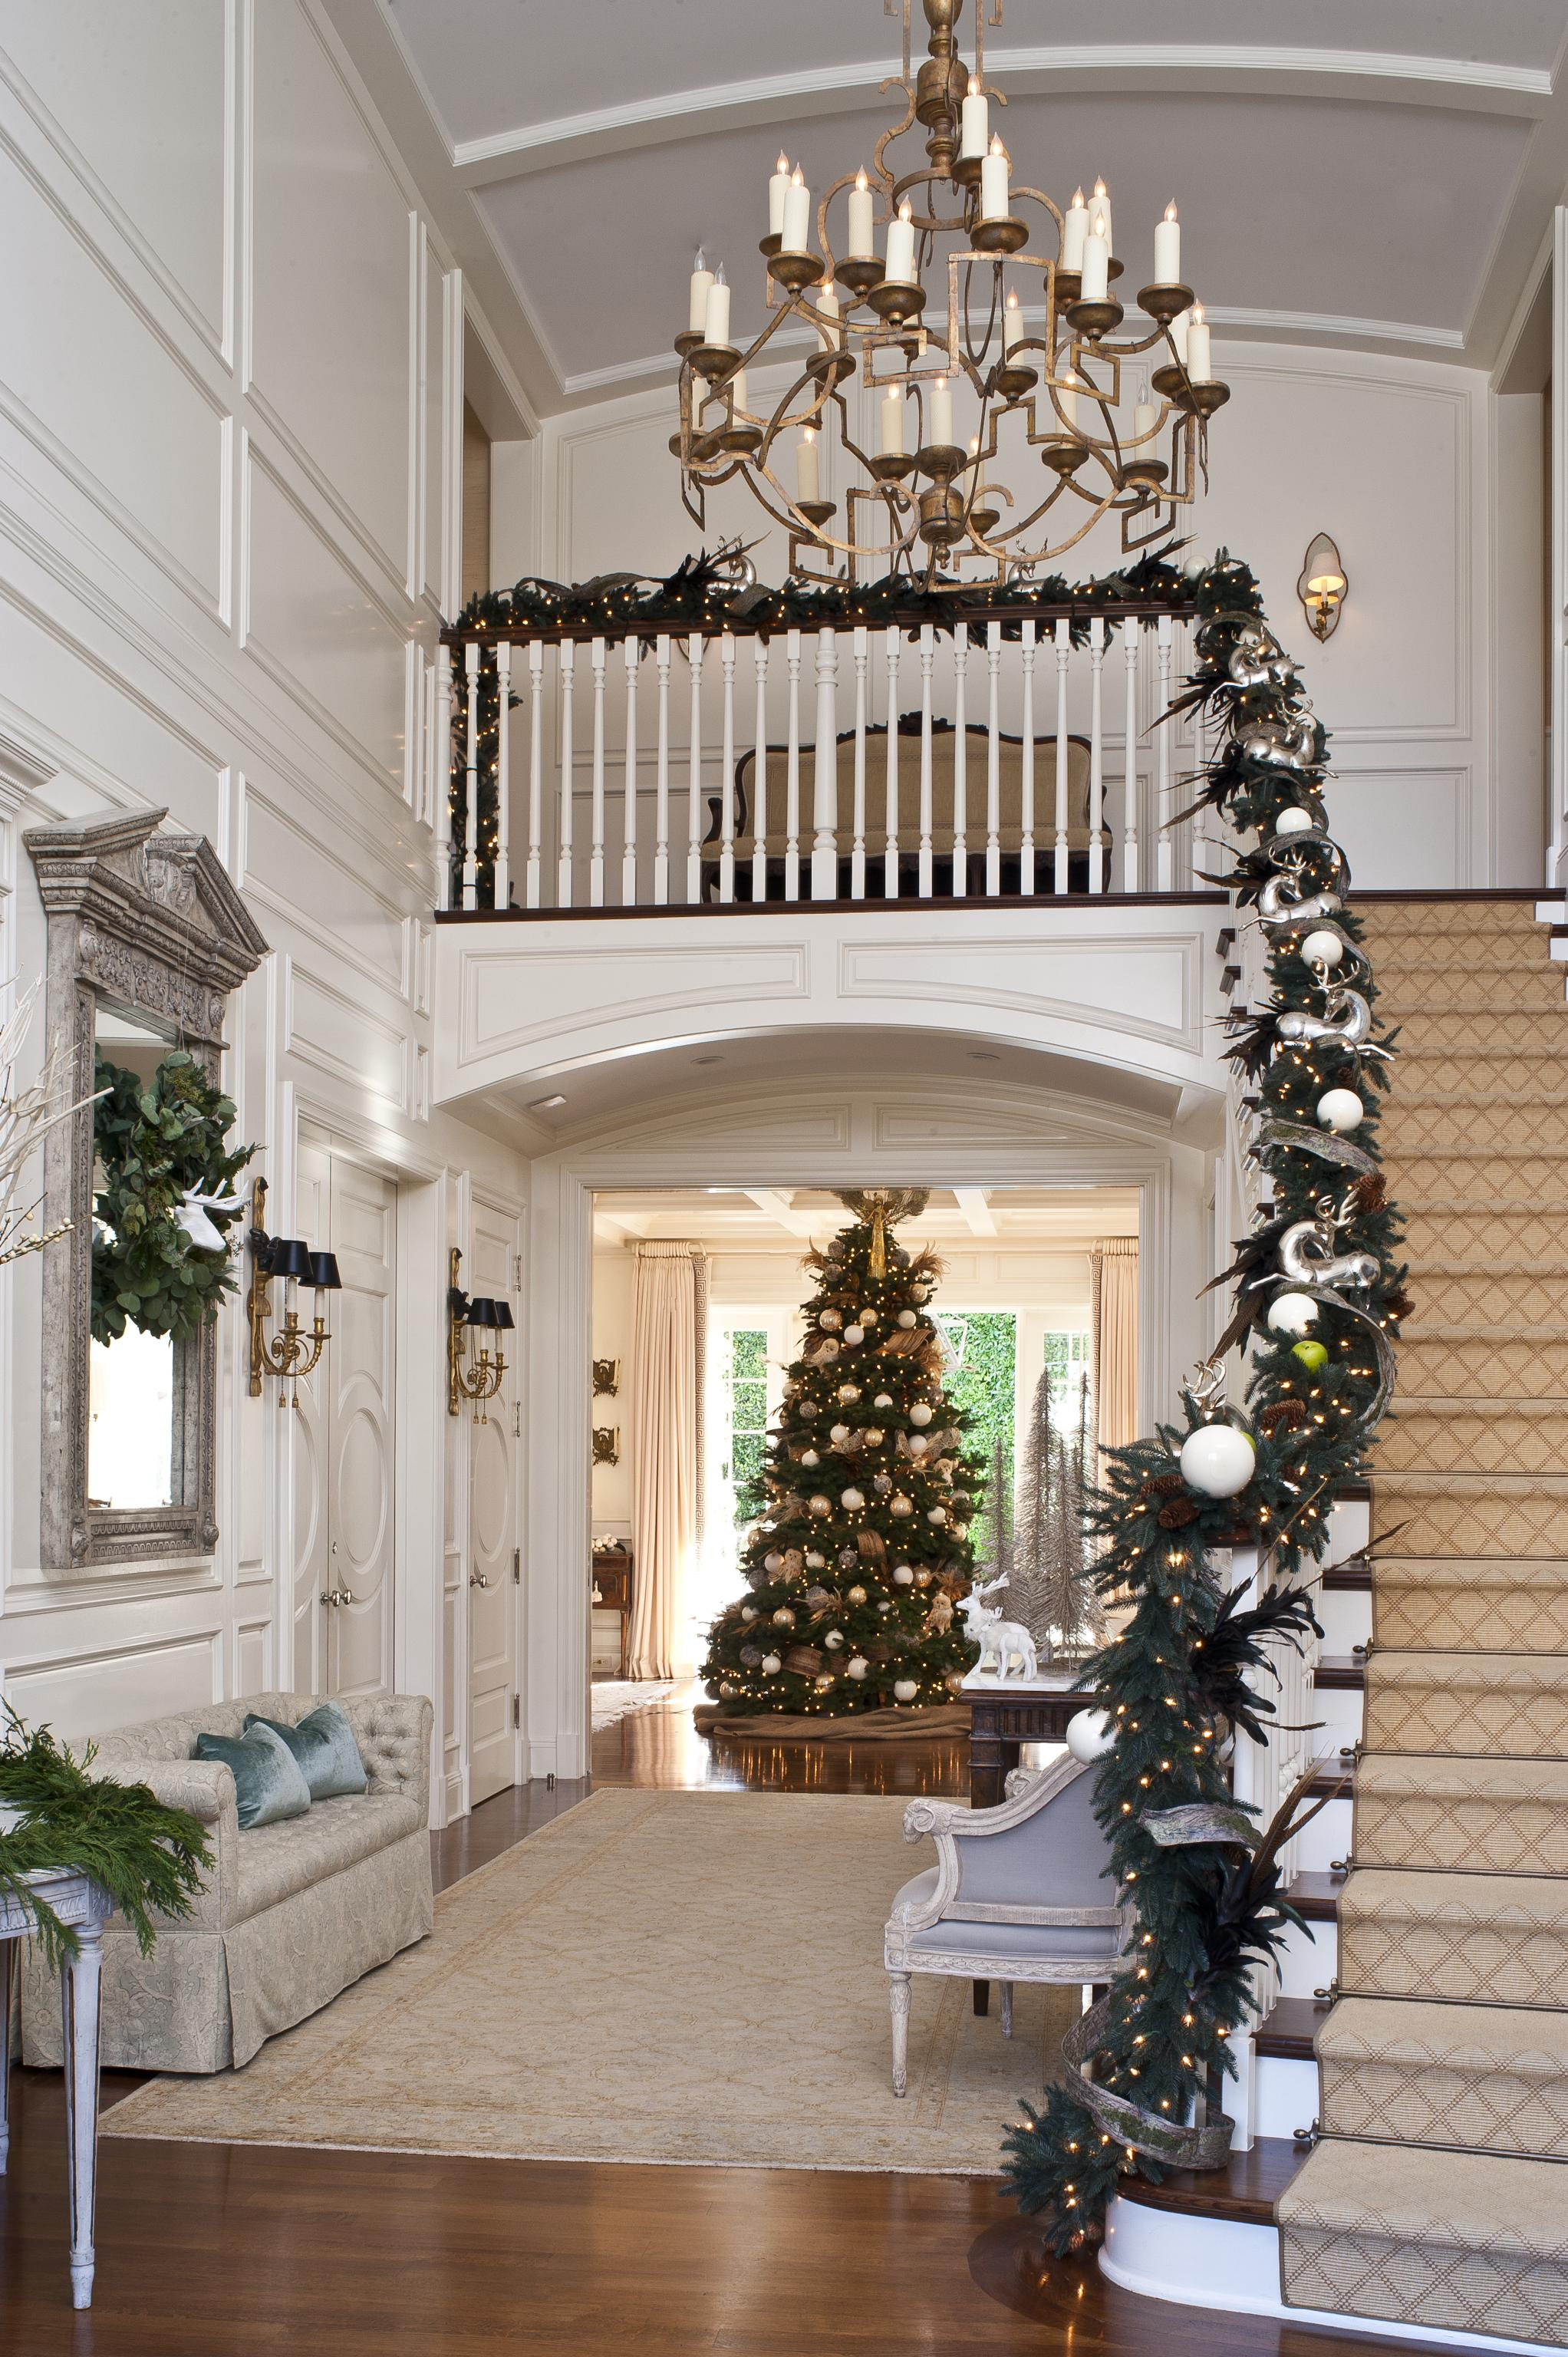 Staircases In Homes Festive Holiday Staircases And Entryways Traditional Home